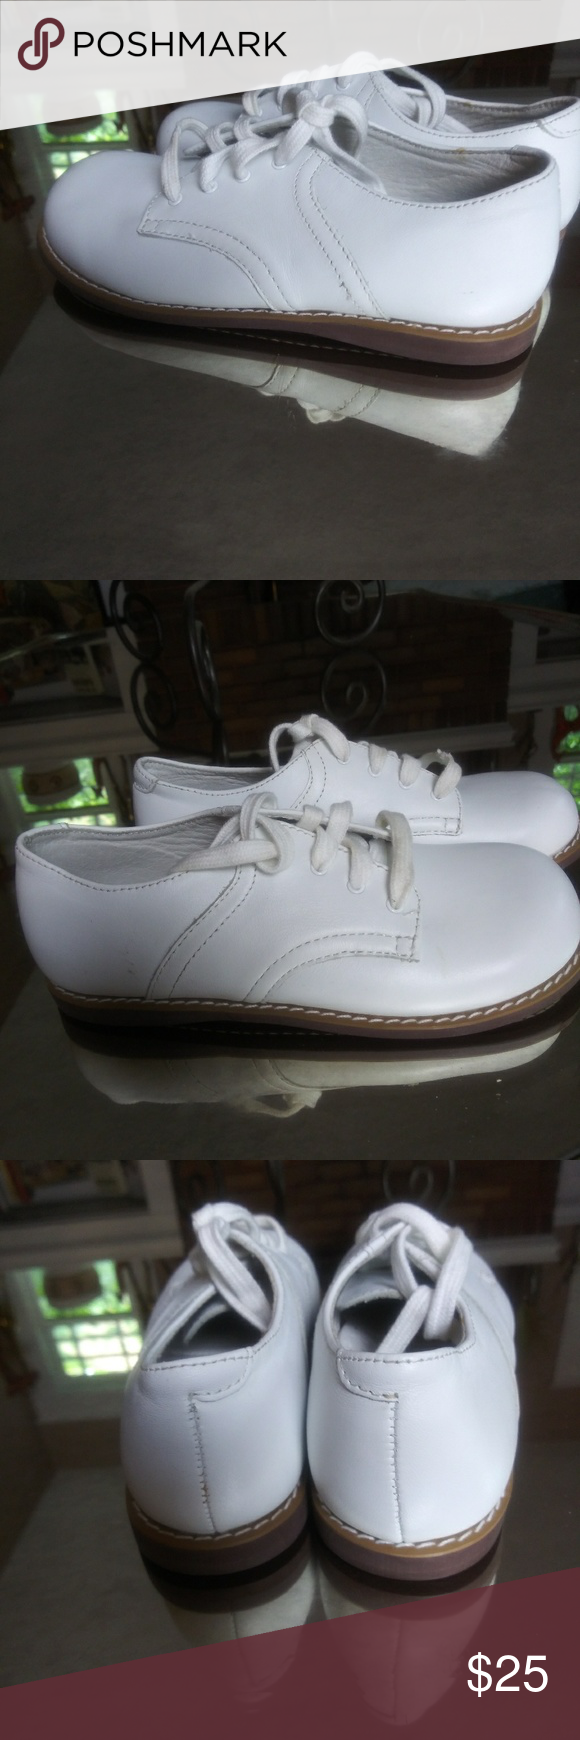 Willits Baby Boy Shoes 12D | Baby boy